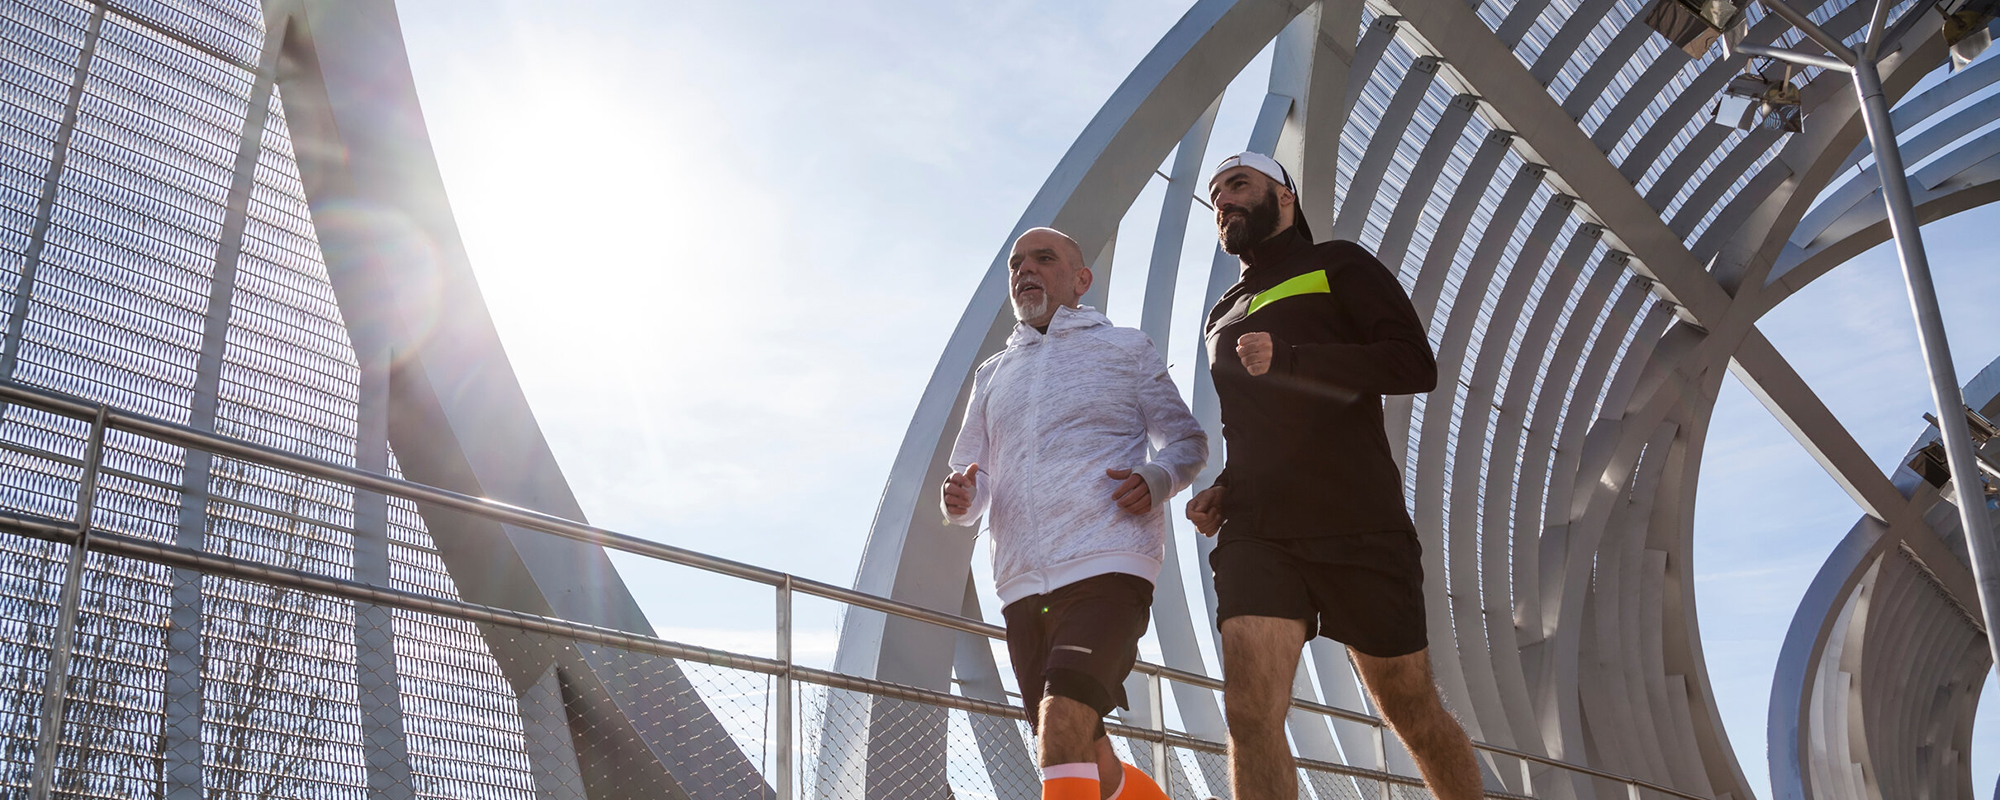 An image of two friends jogging.